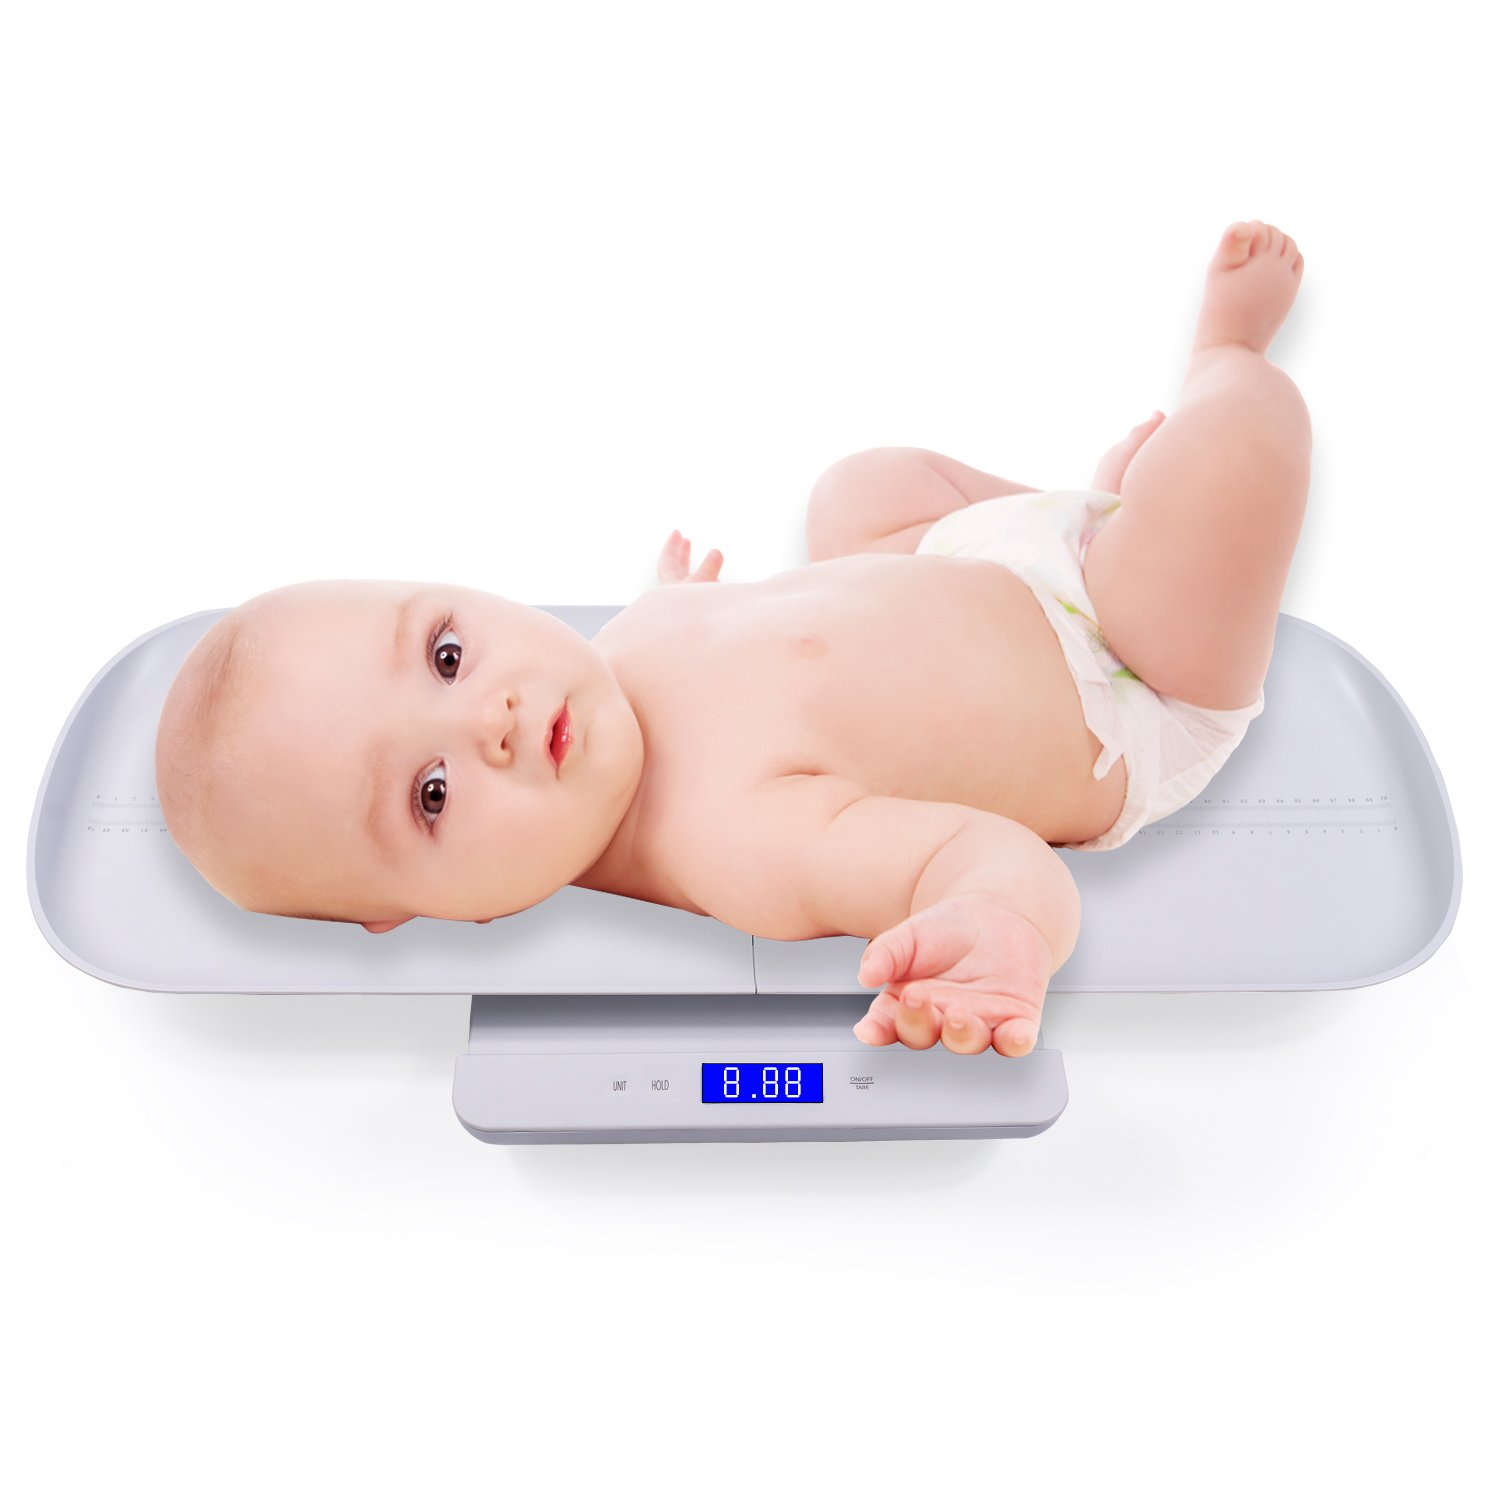 Multi-Function Digital Baby Scale with Weight and Height Track by HEALTHWOOD